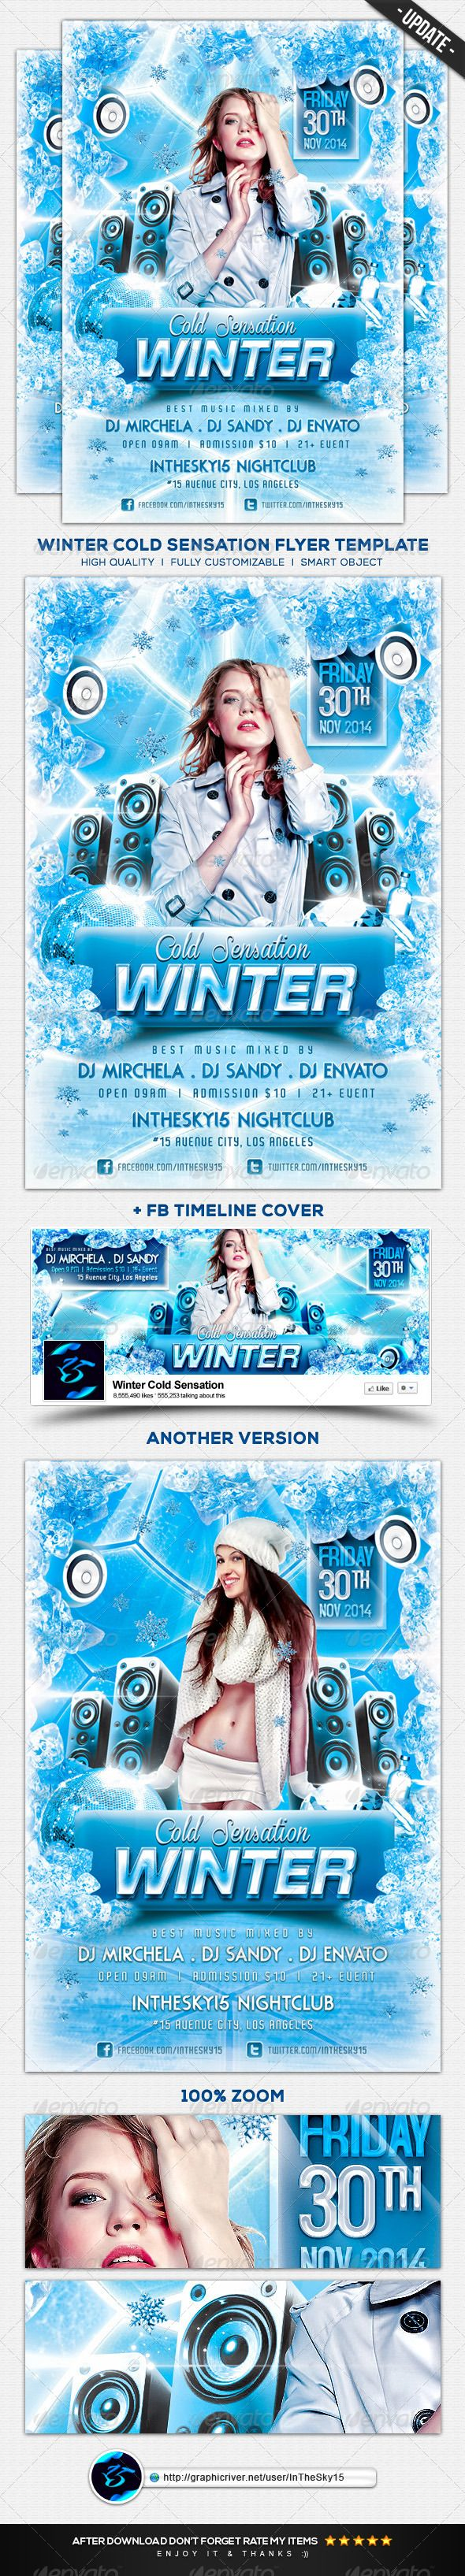 winter cold sensation flyer template ice flyers and flyer template winter cold sensation flyer template psd here graphicriver